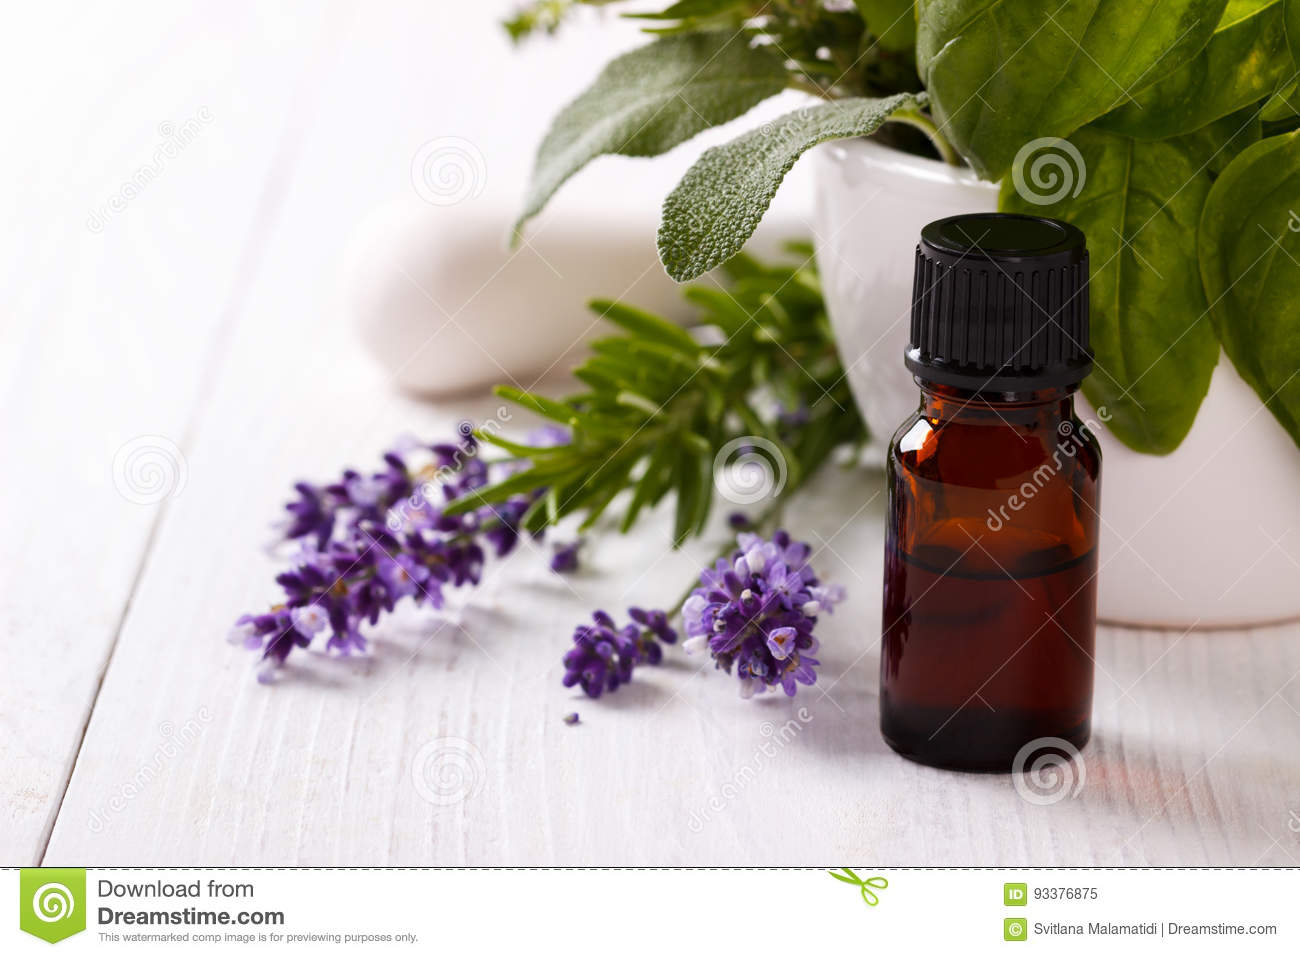 Essential oil and lavender flowers stock image image of medicine lavender flowers and essential oil over white background spa and wellness setting mightylinksfo